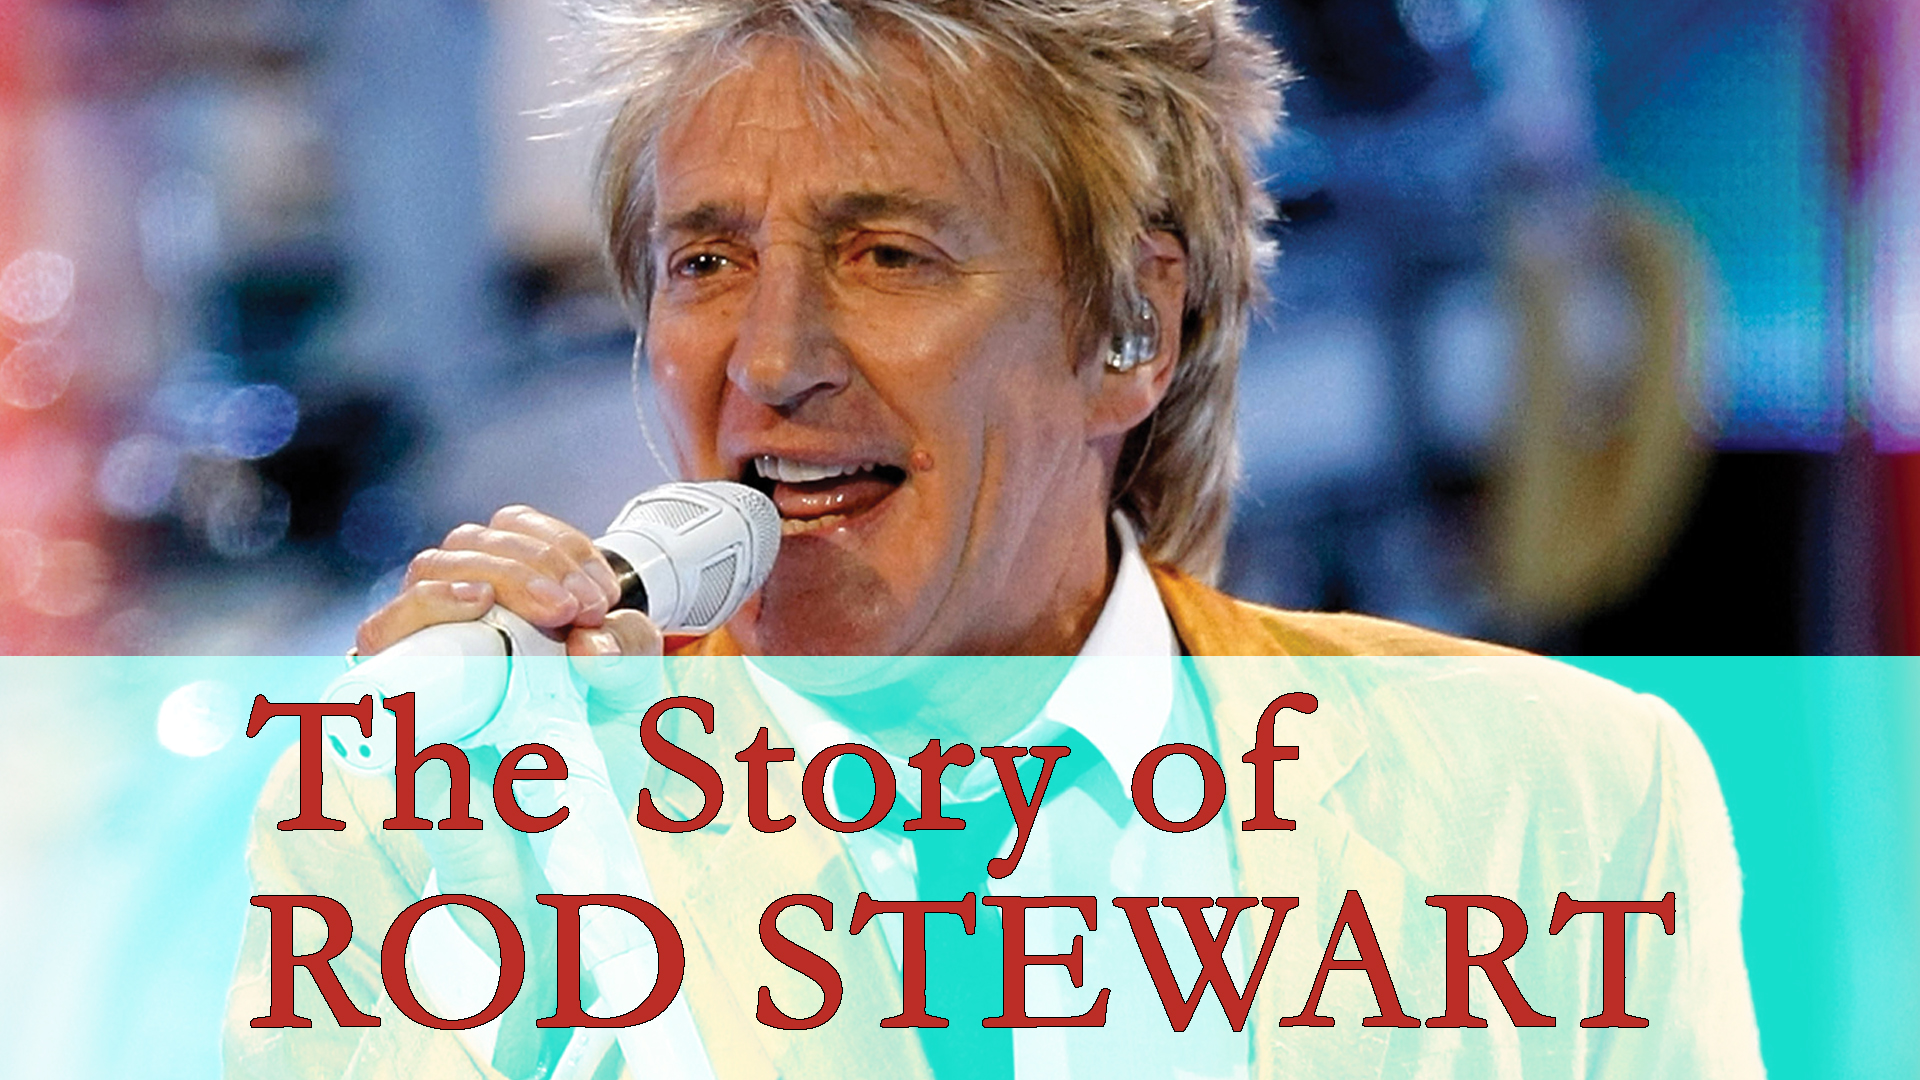 The Story of Rod Stewart